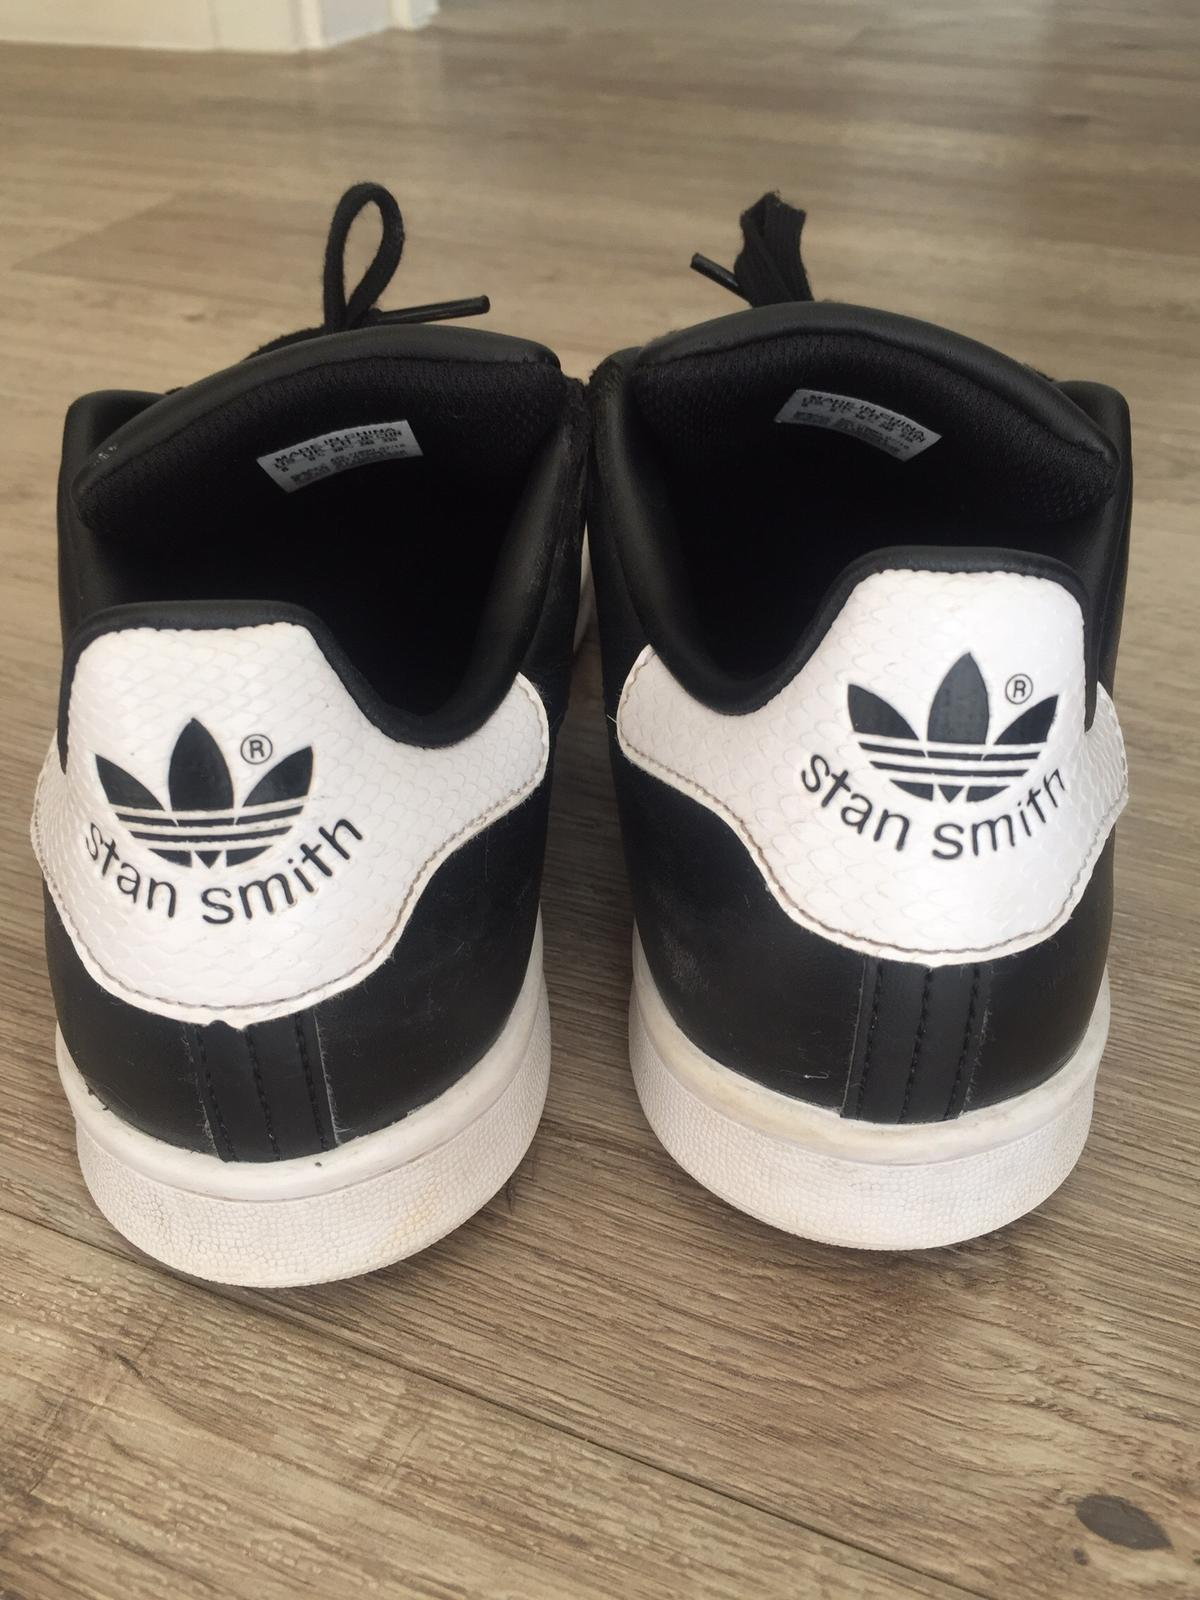 new product e0eee da64a Adidas Stan Smith,UK SIZE 5.5 in Hereford for £6.00 for sale ...